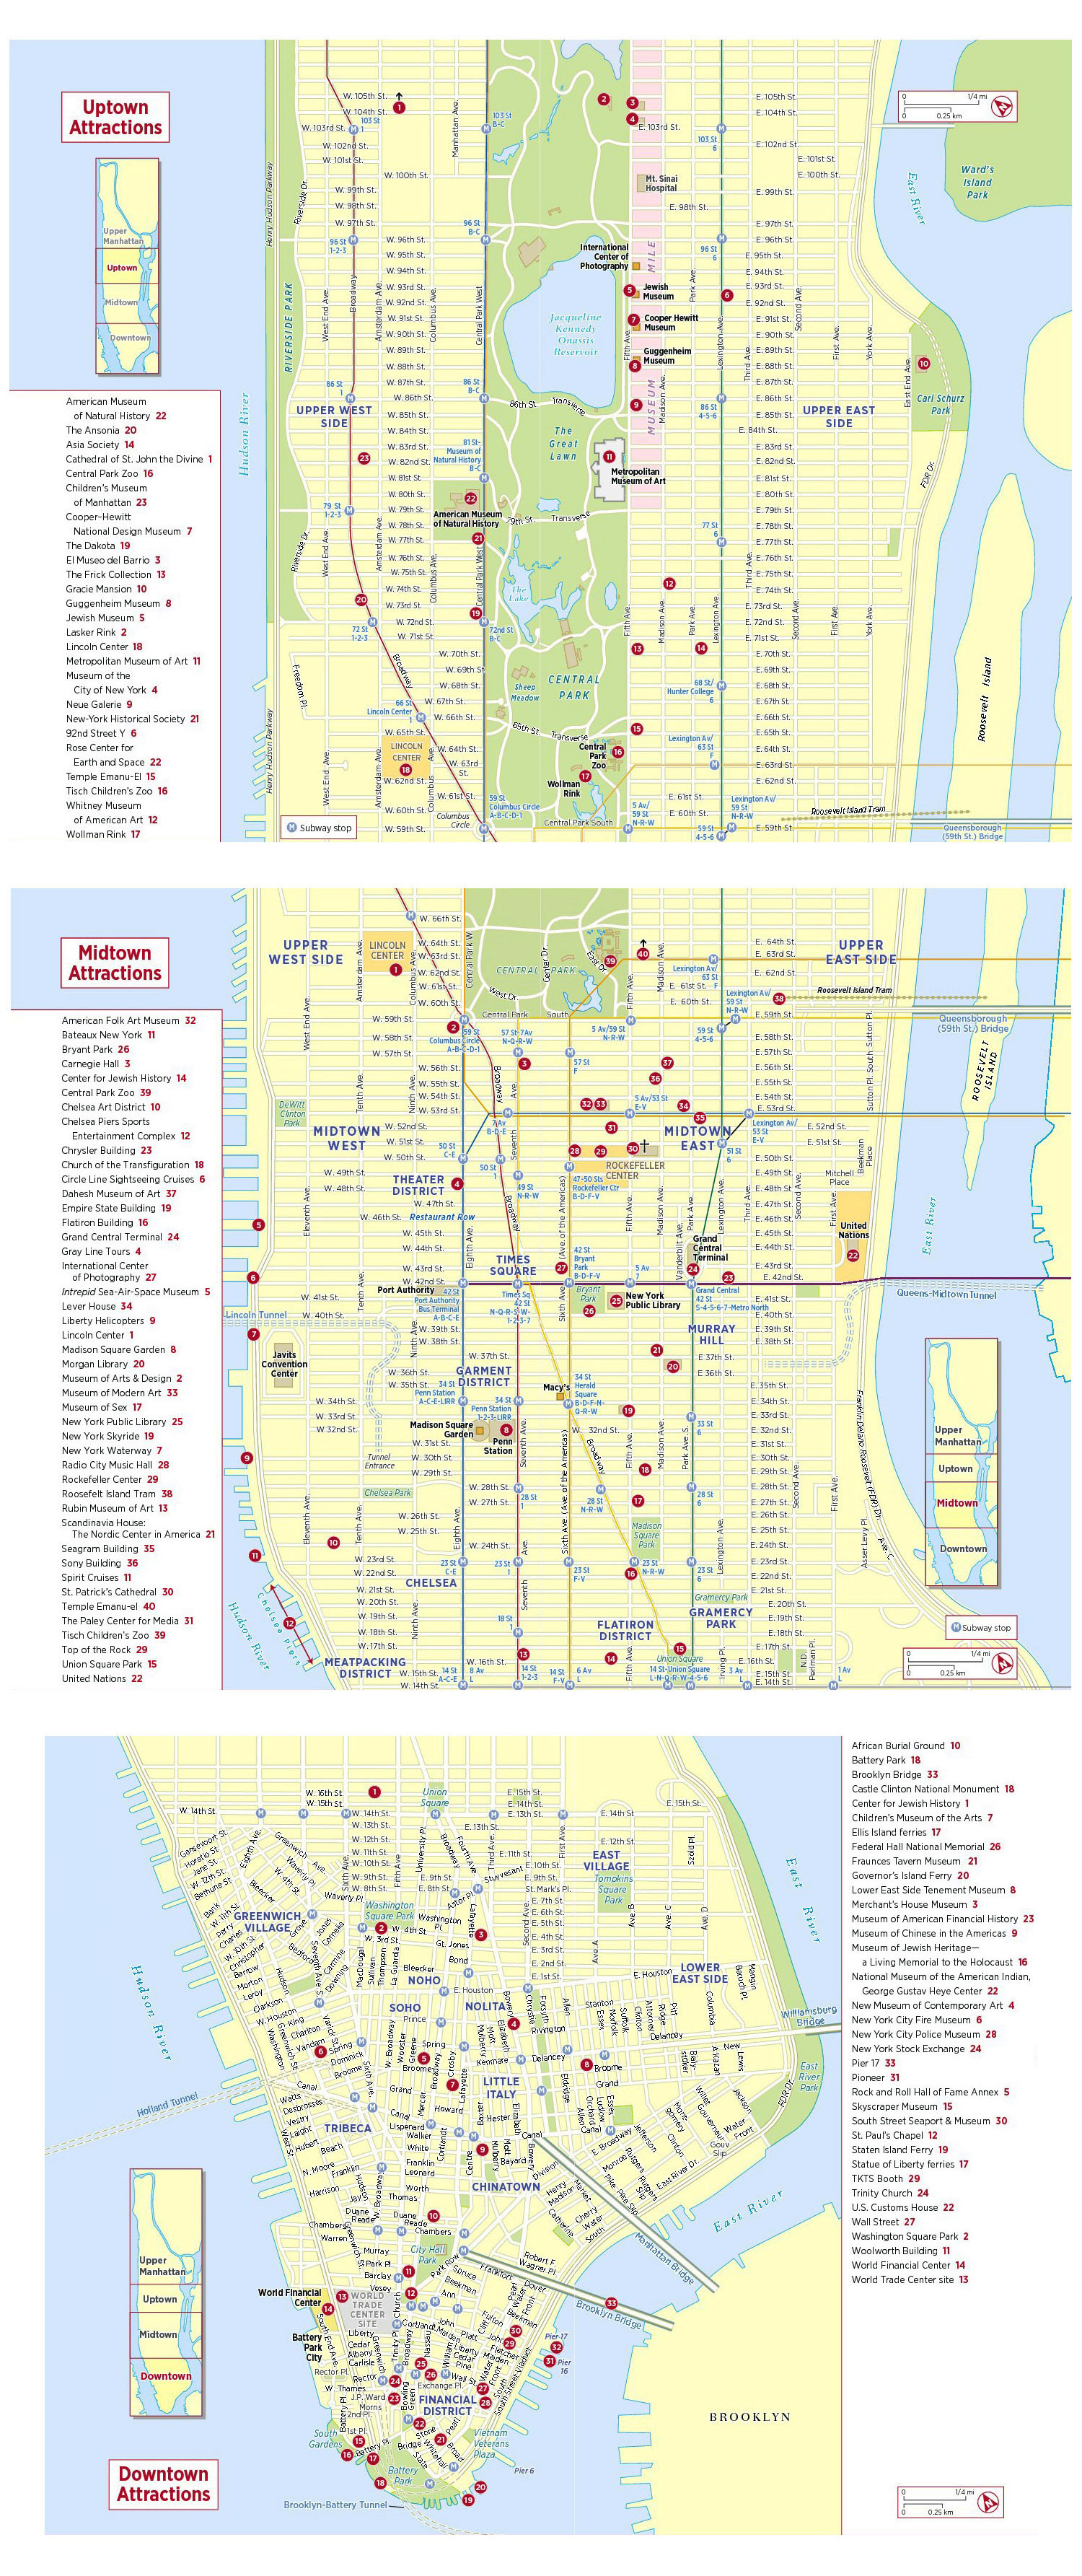 Tourist Attractions In New York Map New York Tourist Attractions – New York City Map With Tourist Attractions